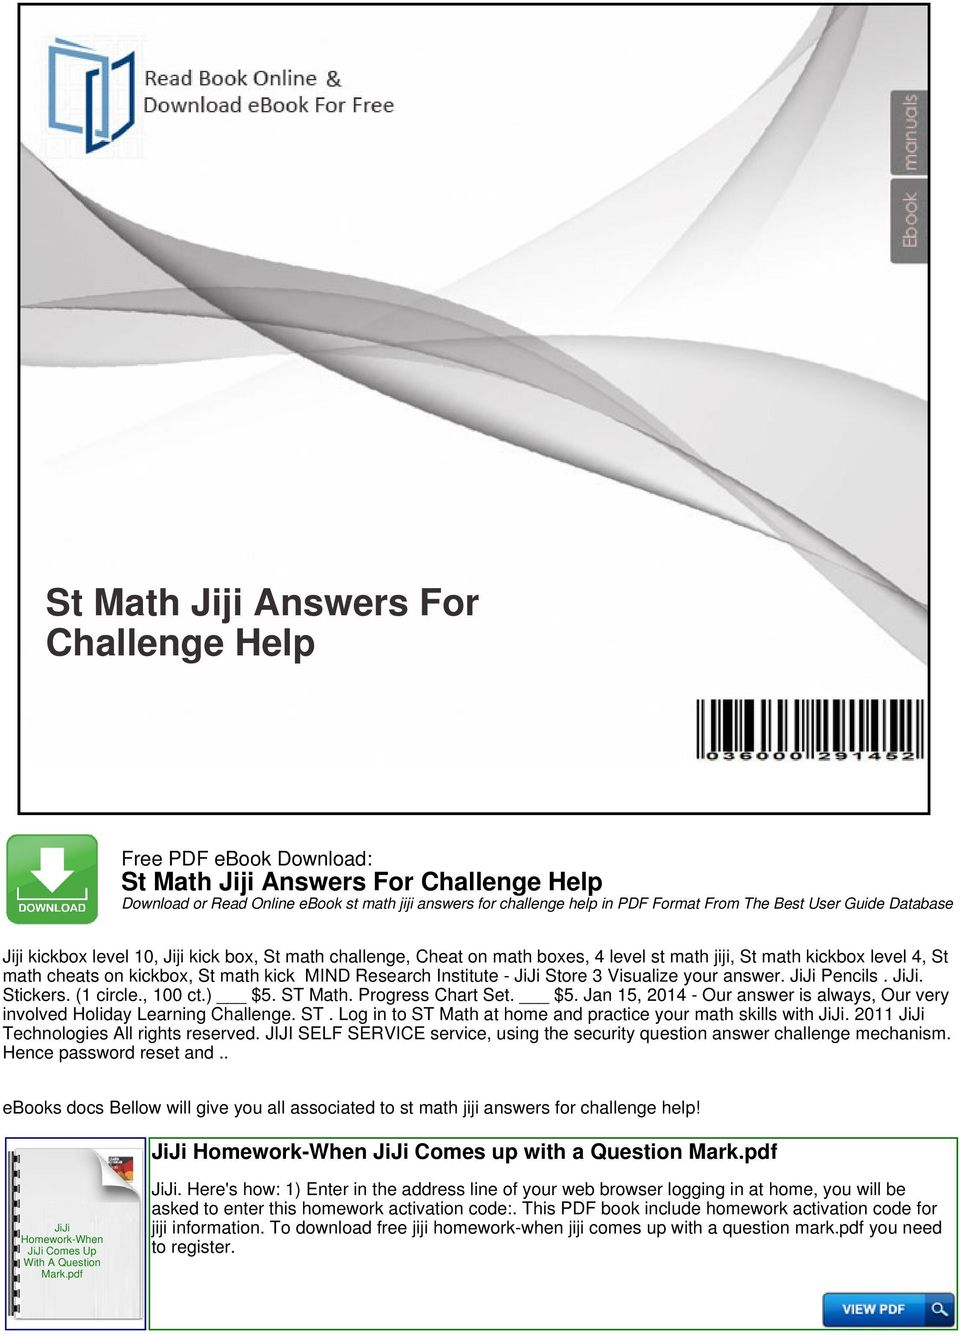 St Math Jiji Answers For Challenge Help - PDF